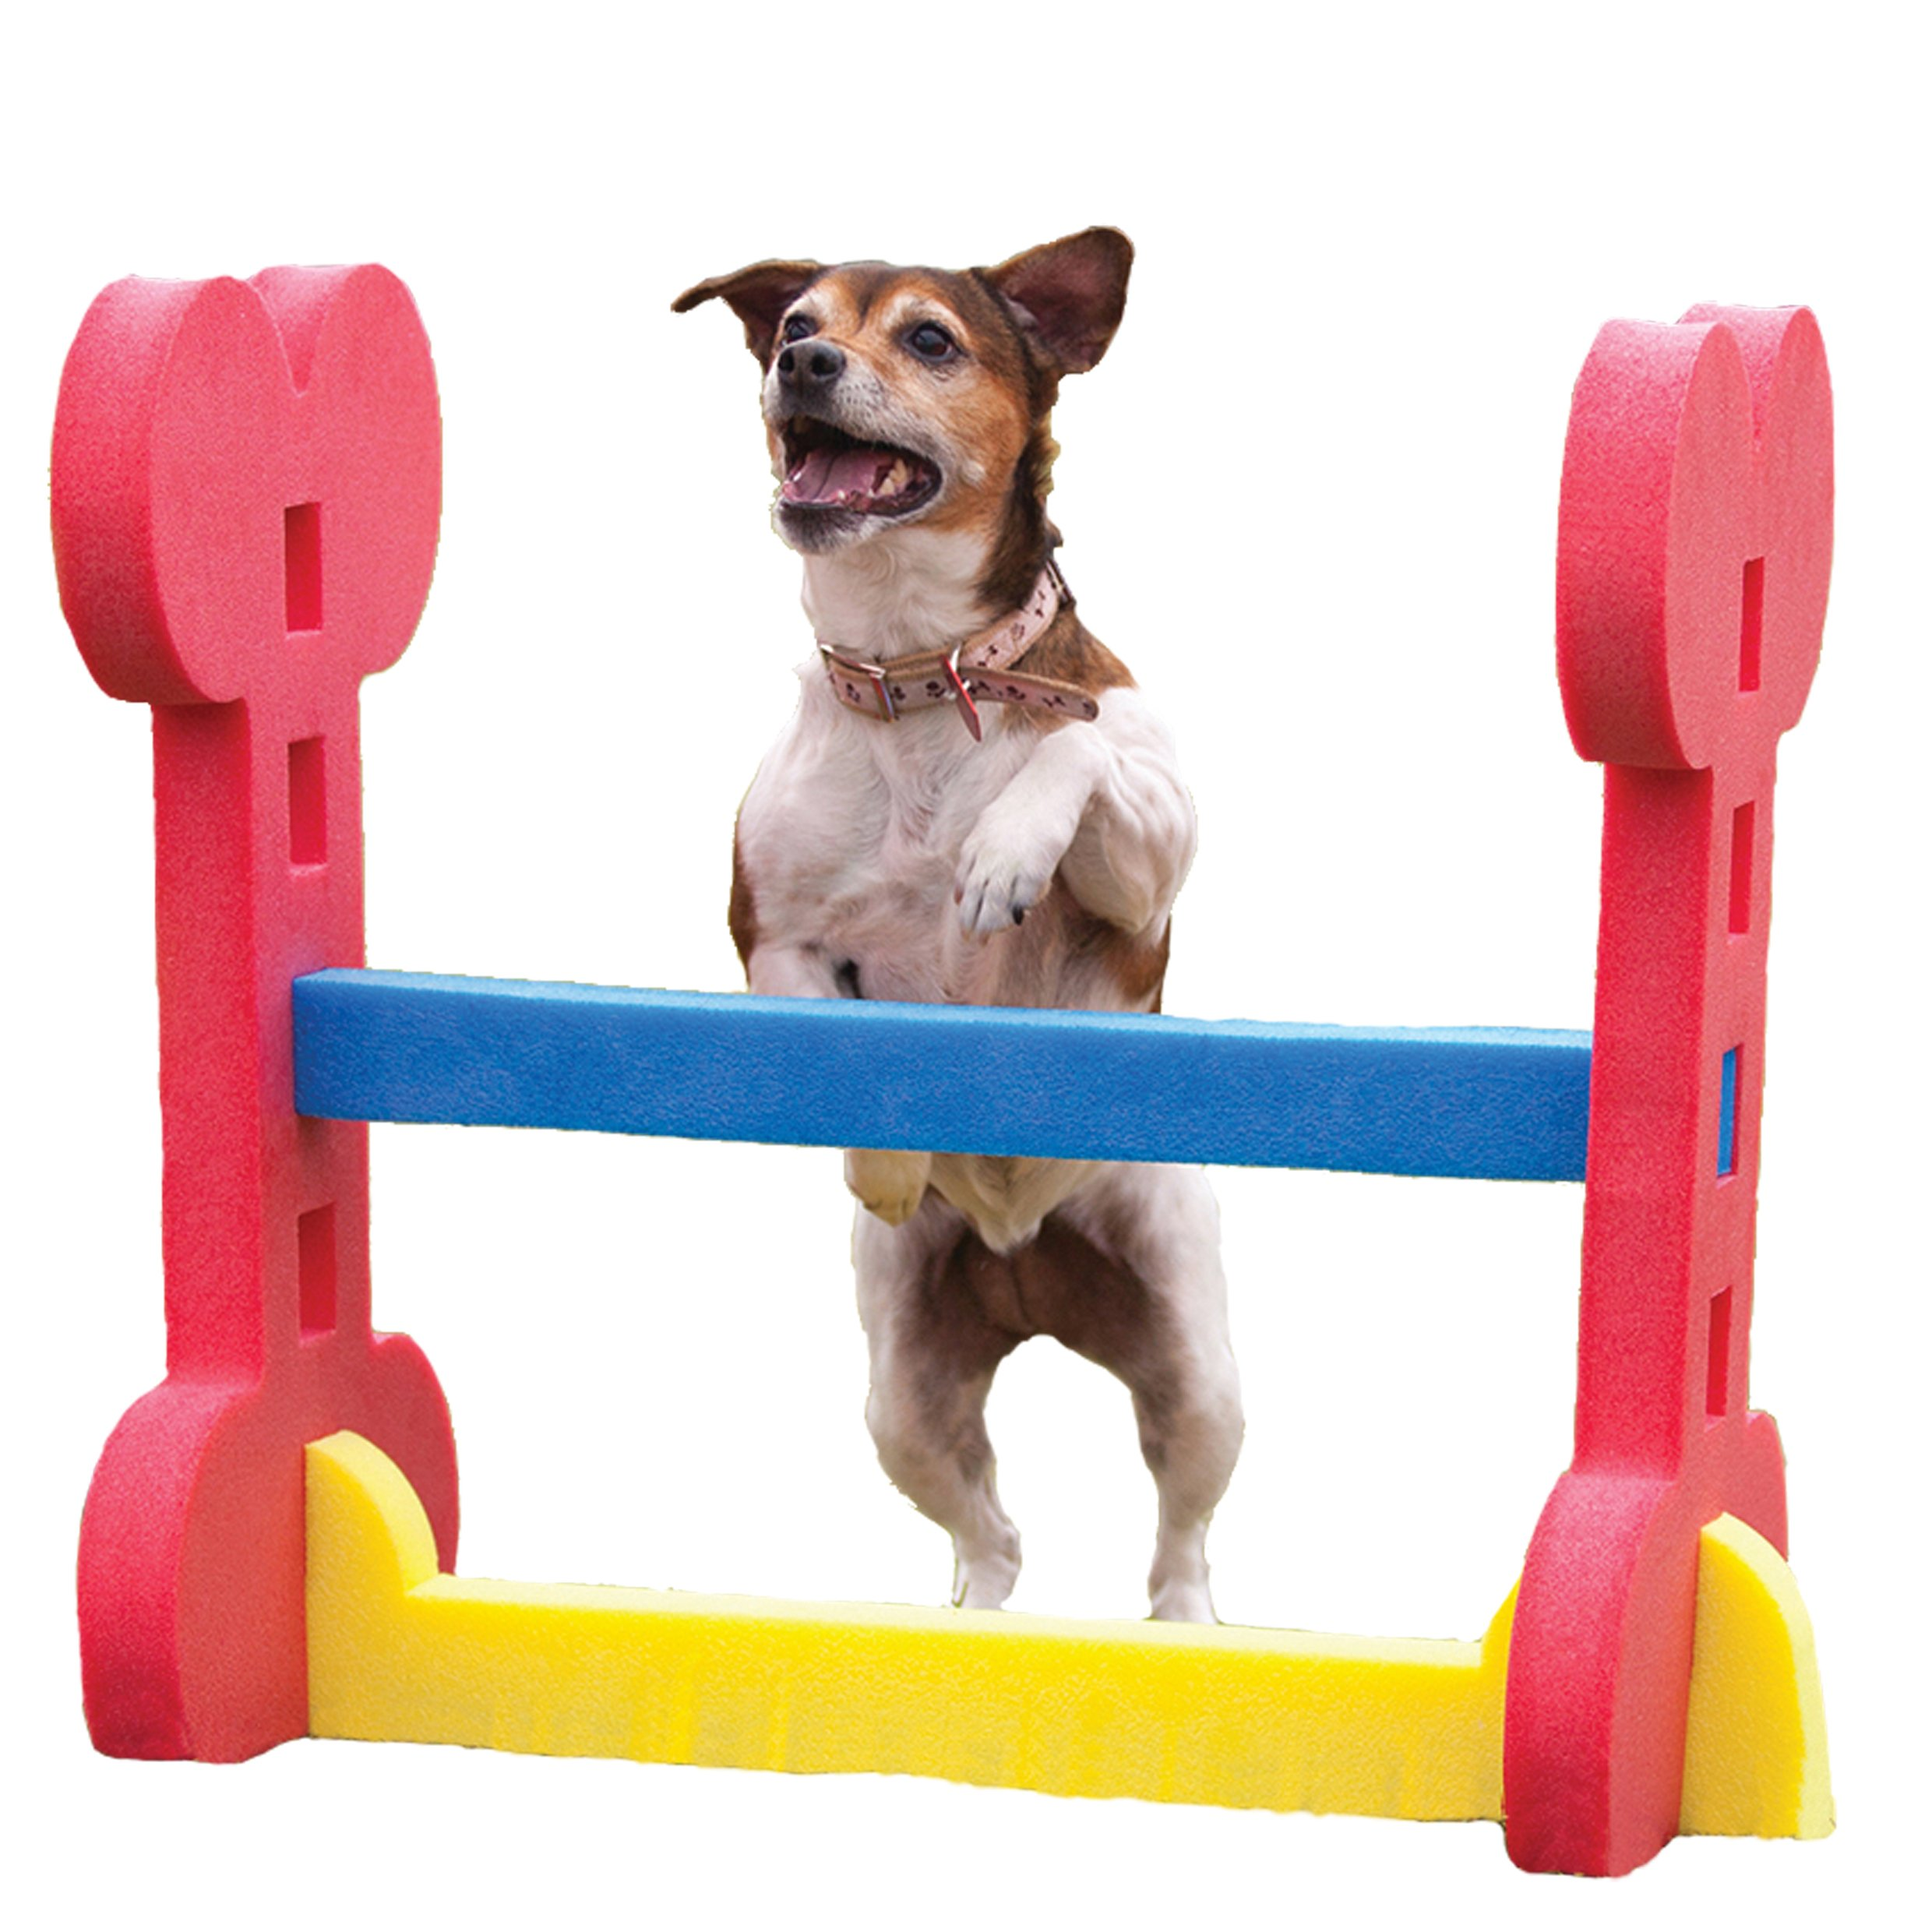 Agility Hurdle - Dog play & exercise toy